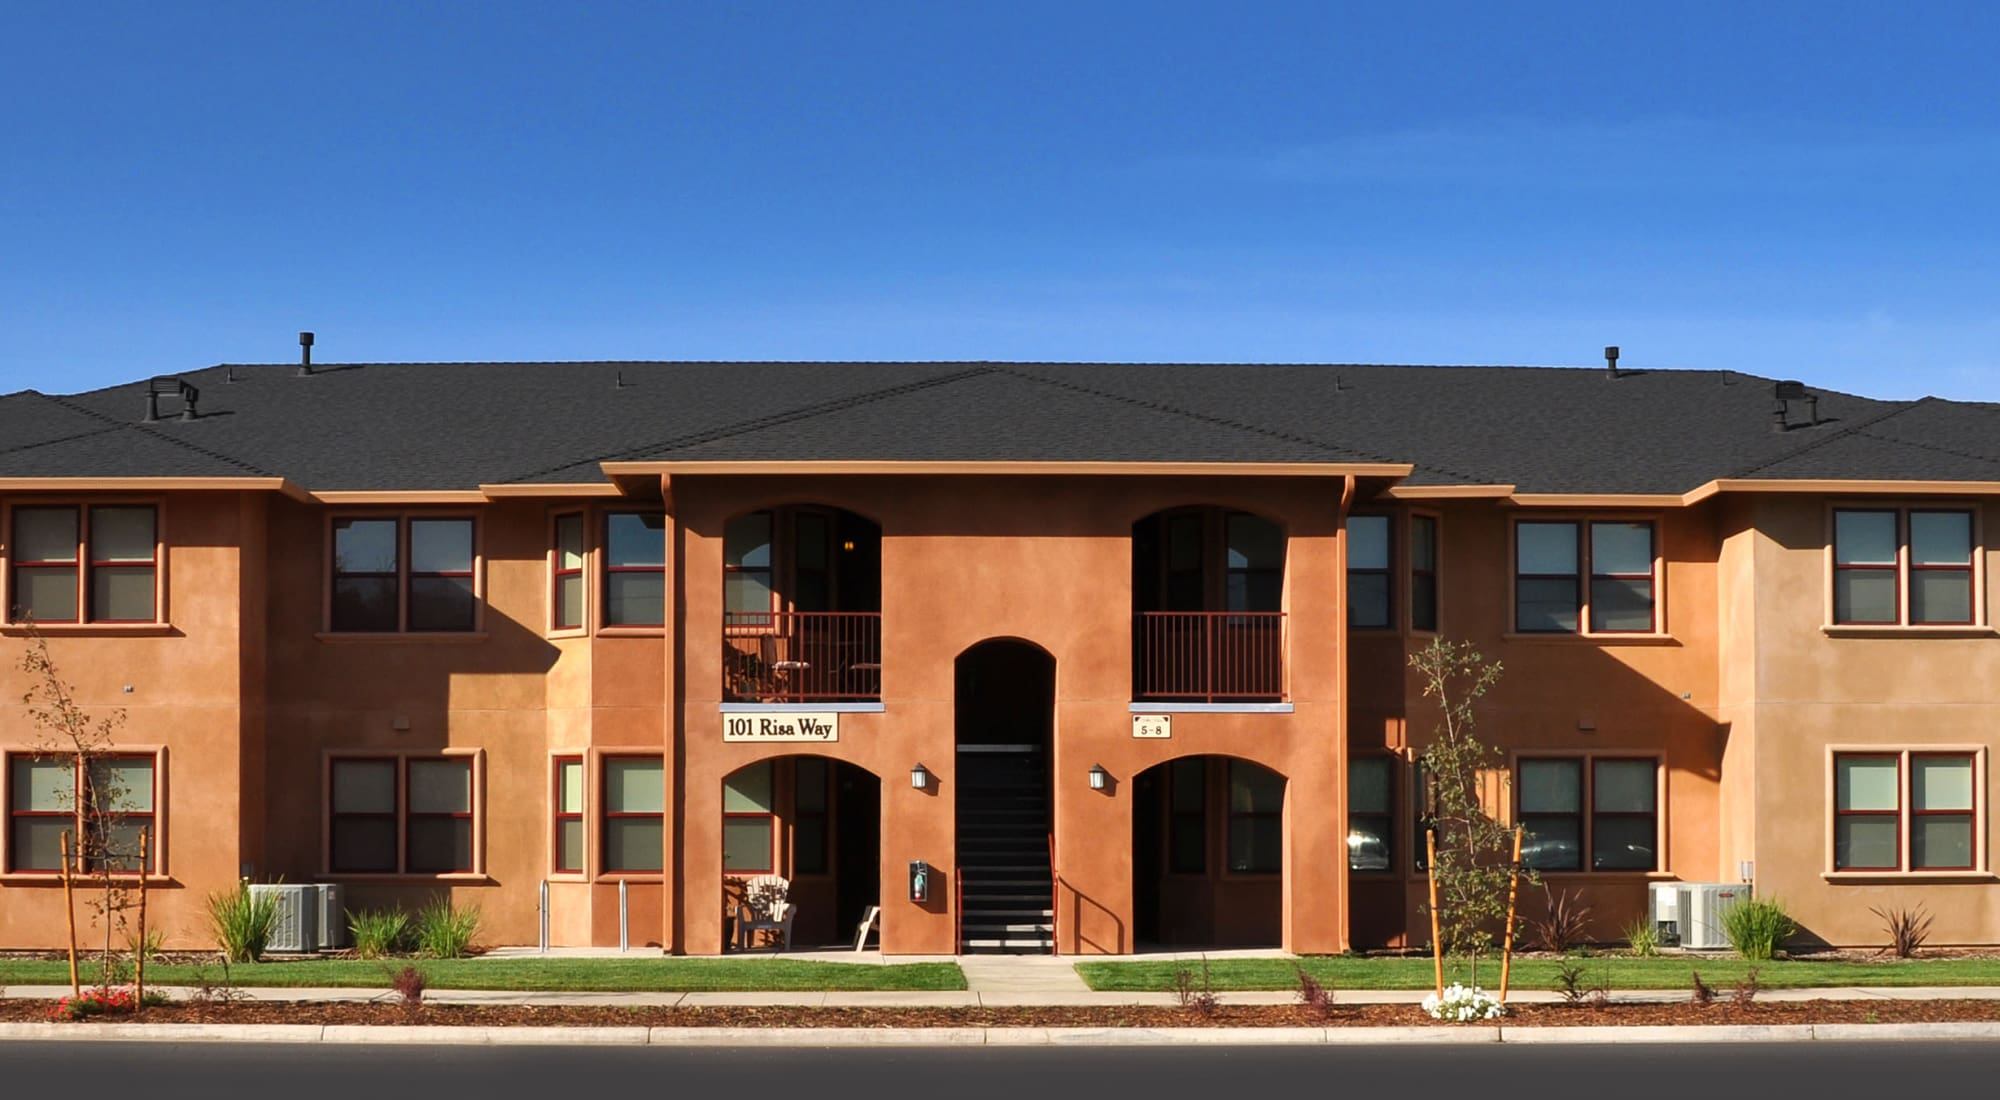 Schedule a Tour at Villa Risa Apartments in Chico, California